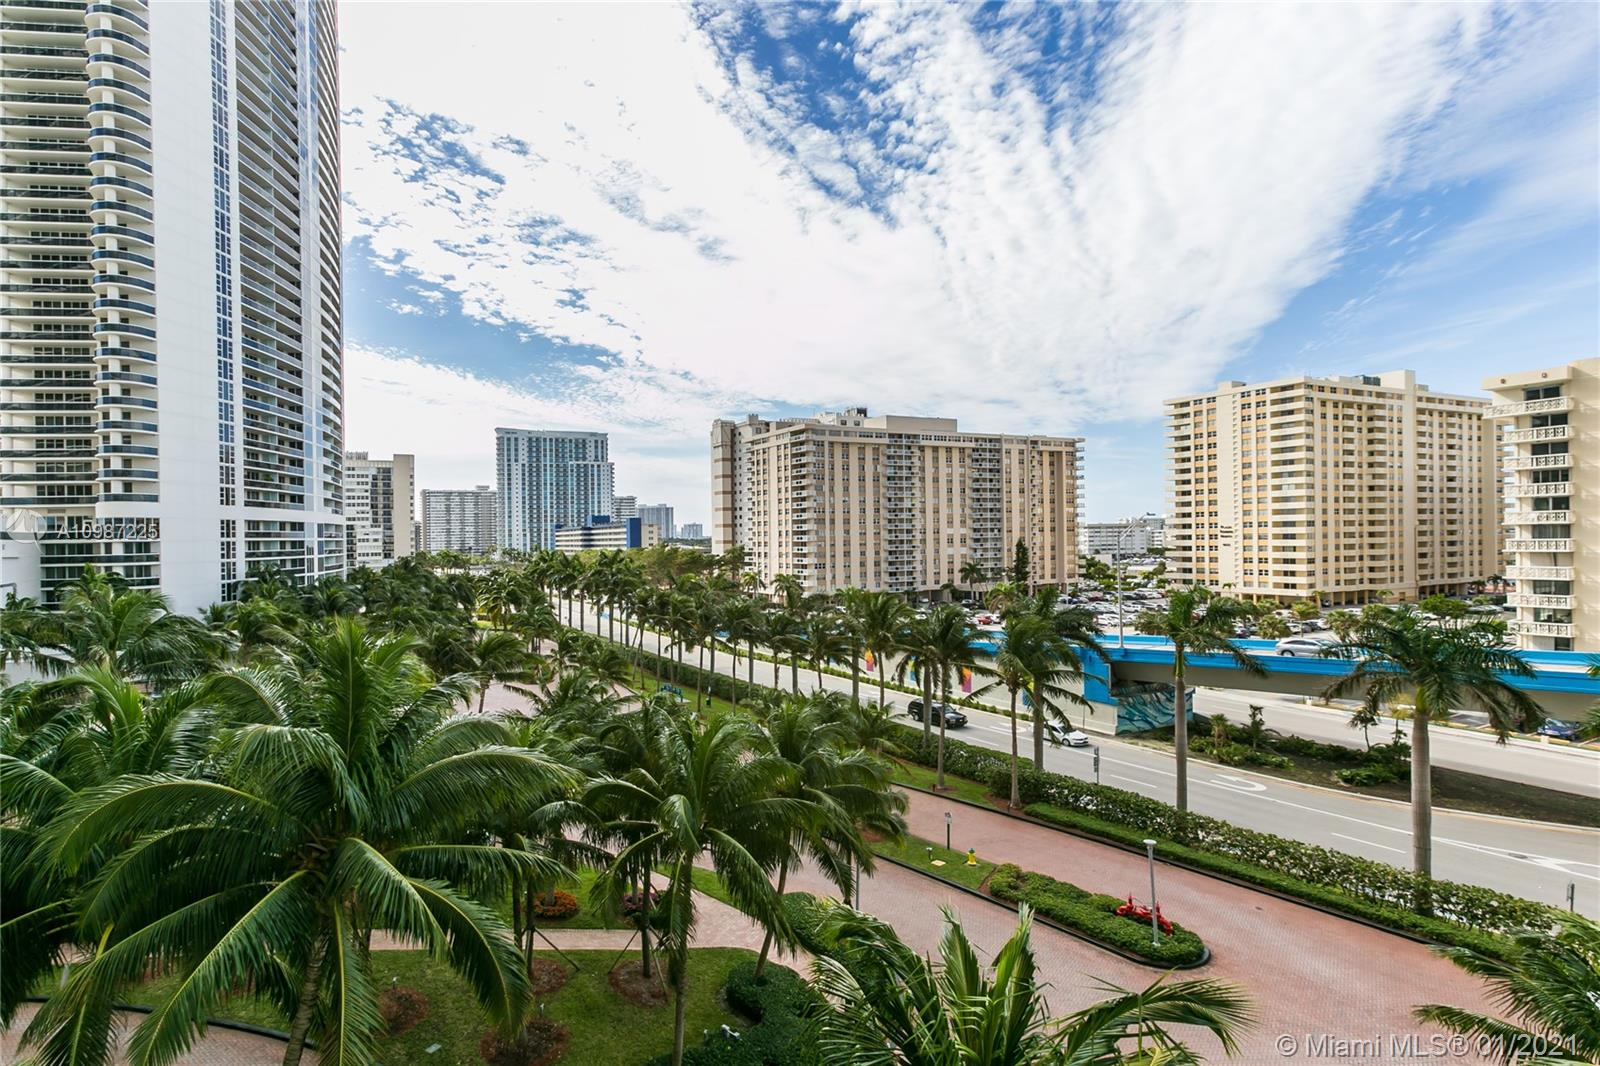 Beach Club III #607 - 1800 S Ocean Dr #607, Hallandale Beach, FL 33009